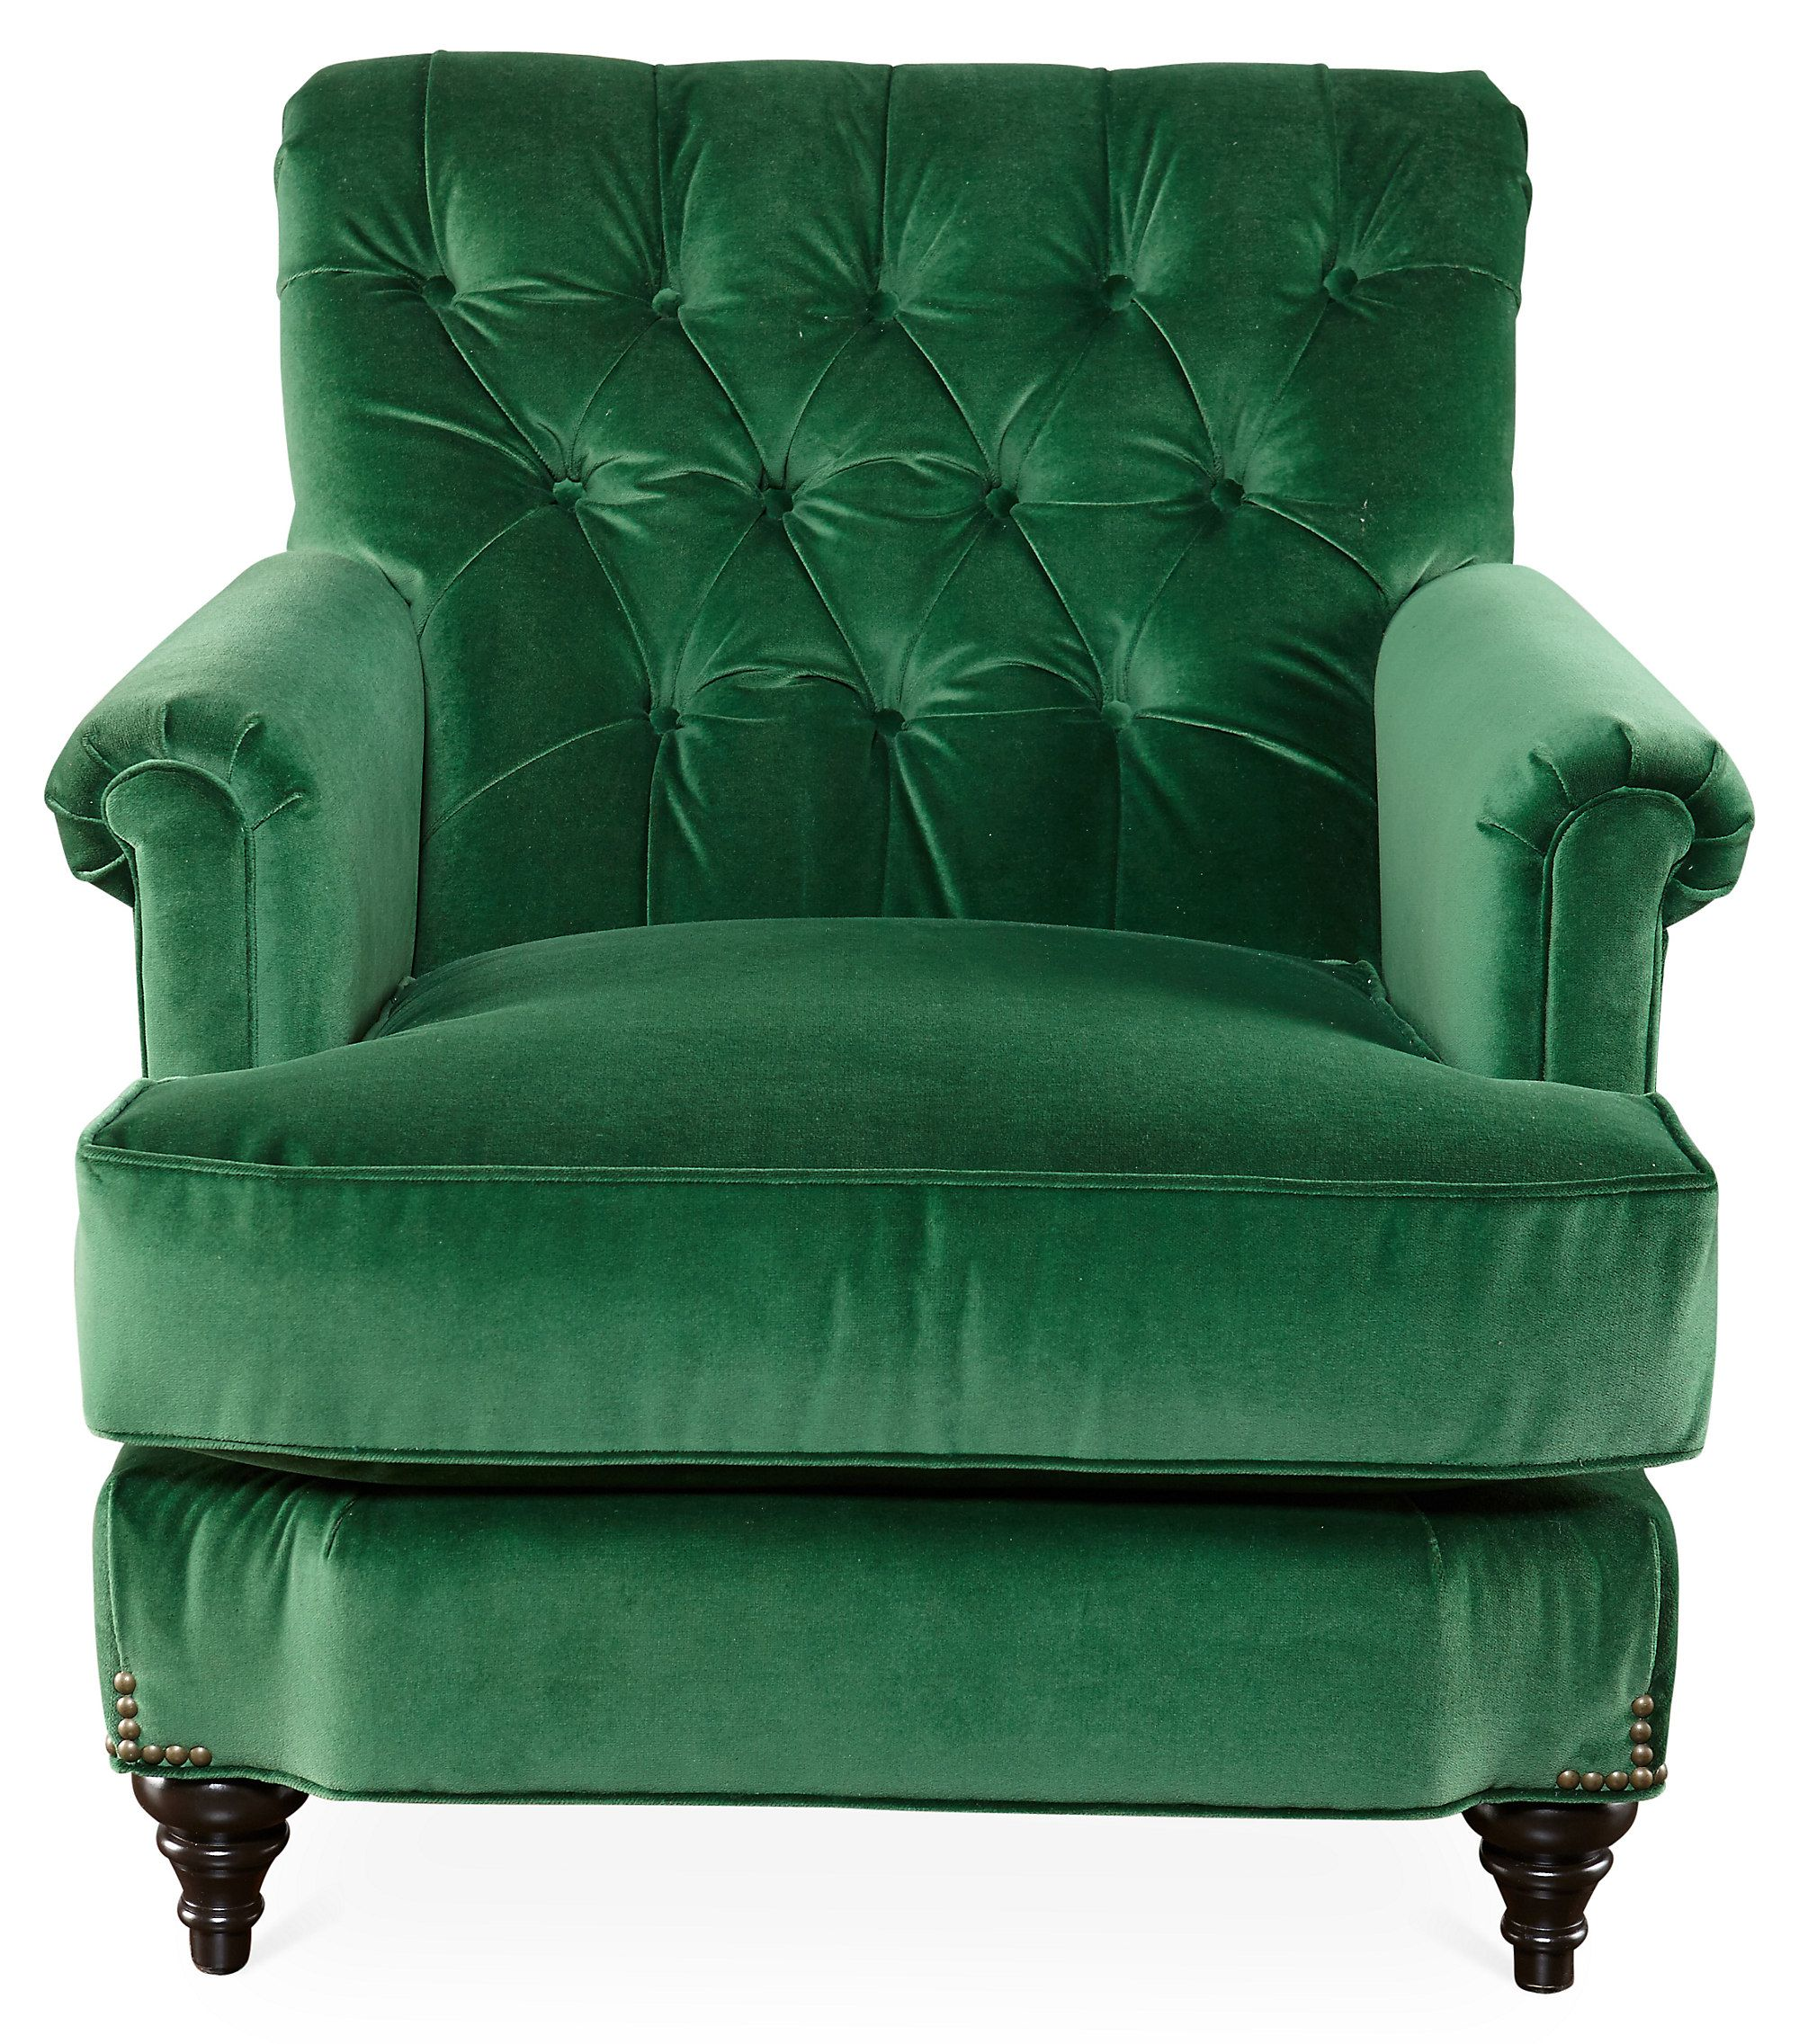 Acton Tufted Chair Emerald Green Velvet e Kings Lane